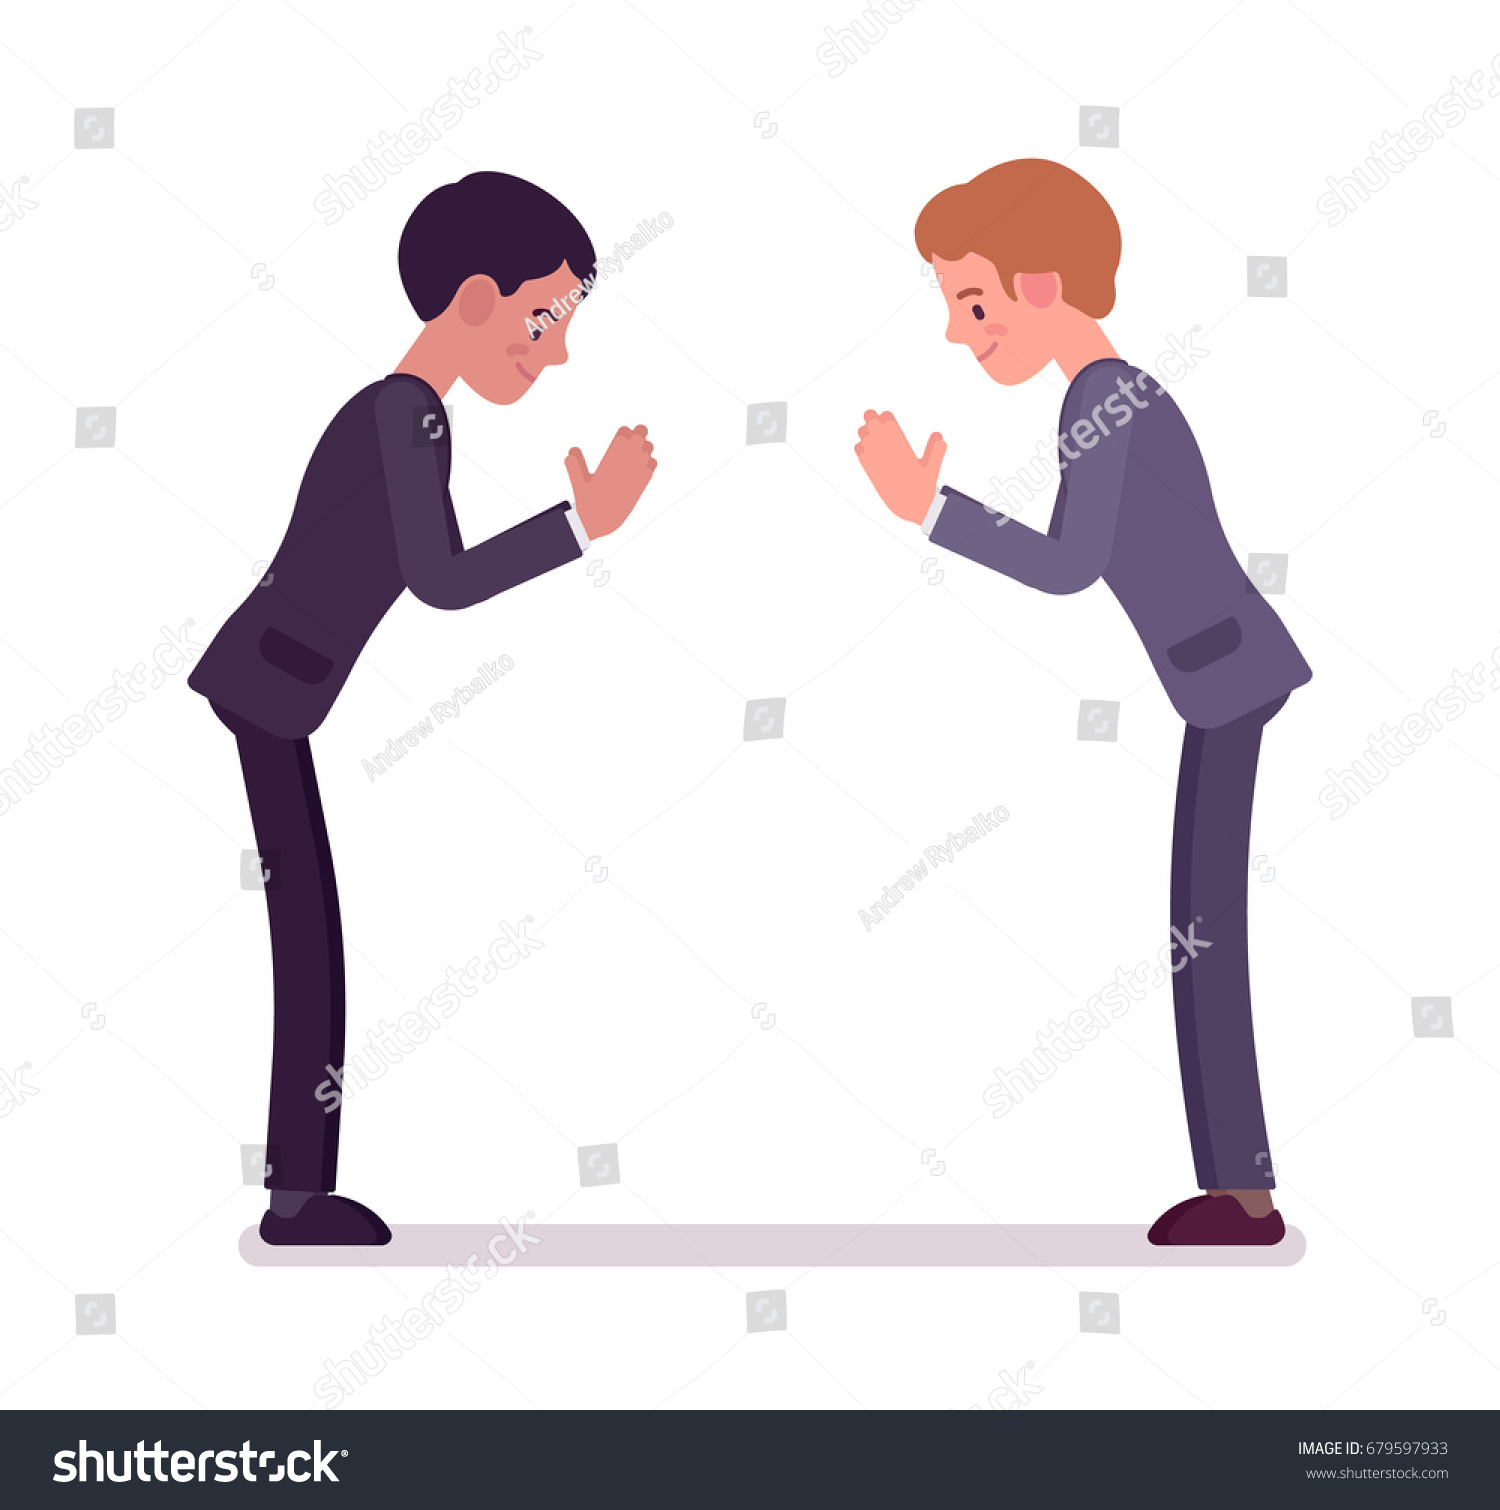 Business Partners Giving Bow Men Formal Stock Vector Royalty Free